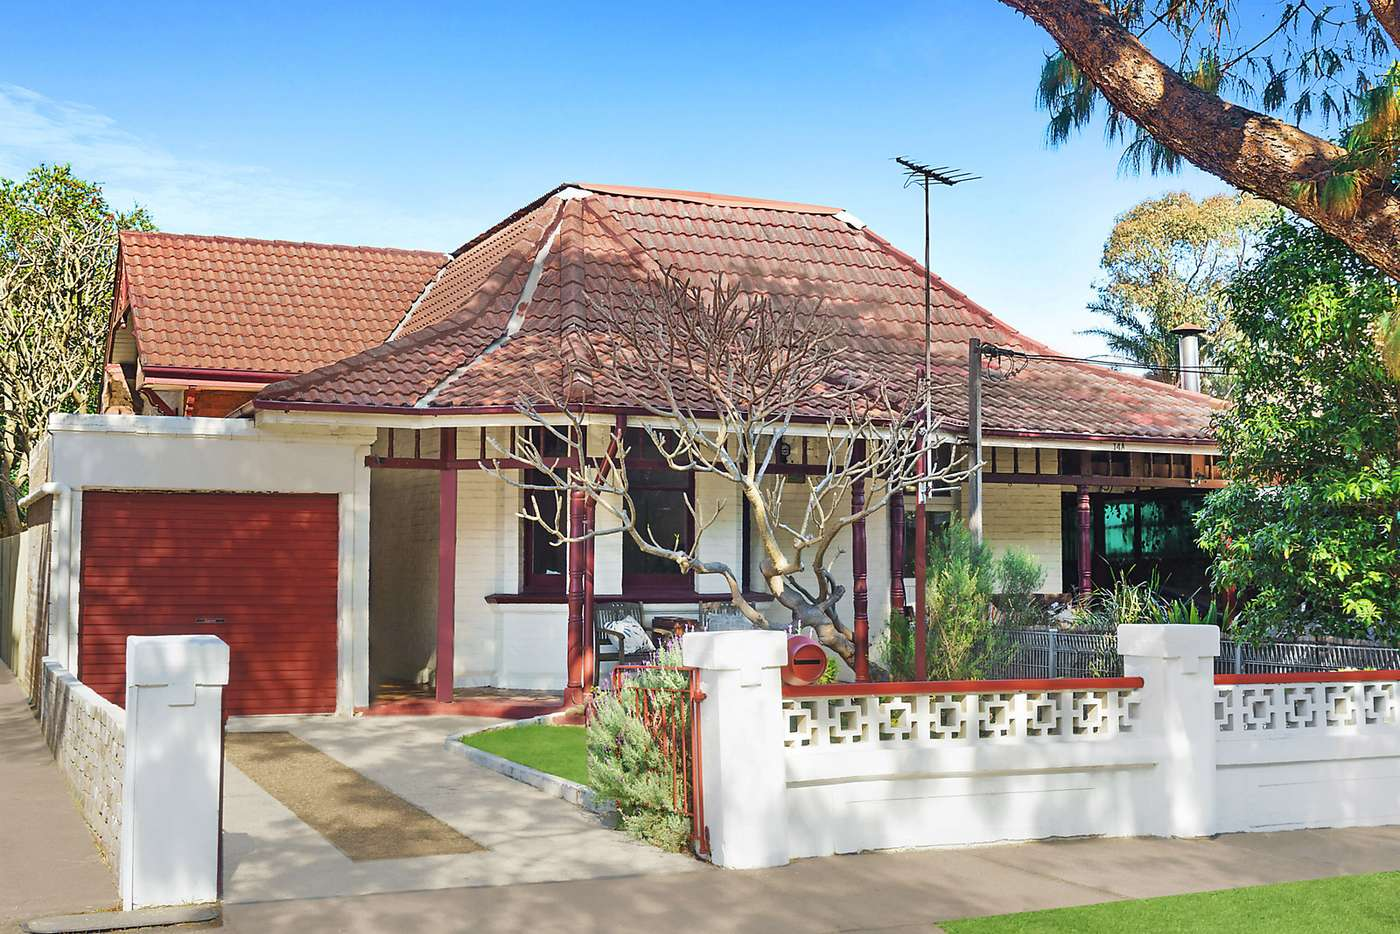 Main view of Homely house listing, 14 Elsmere Street, Kensington NSW 2033